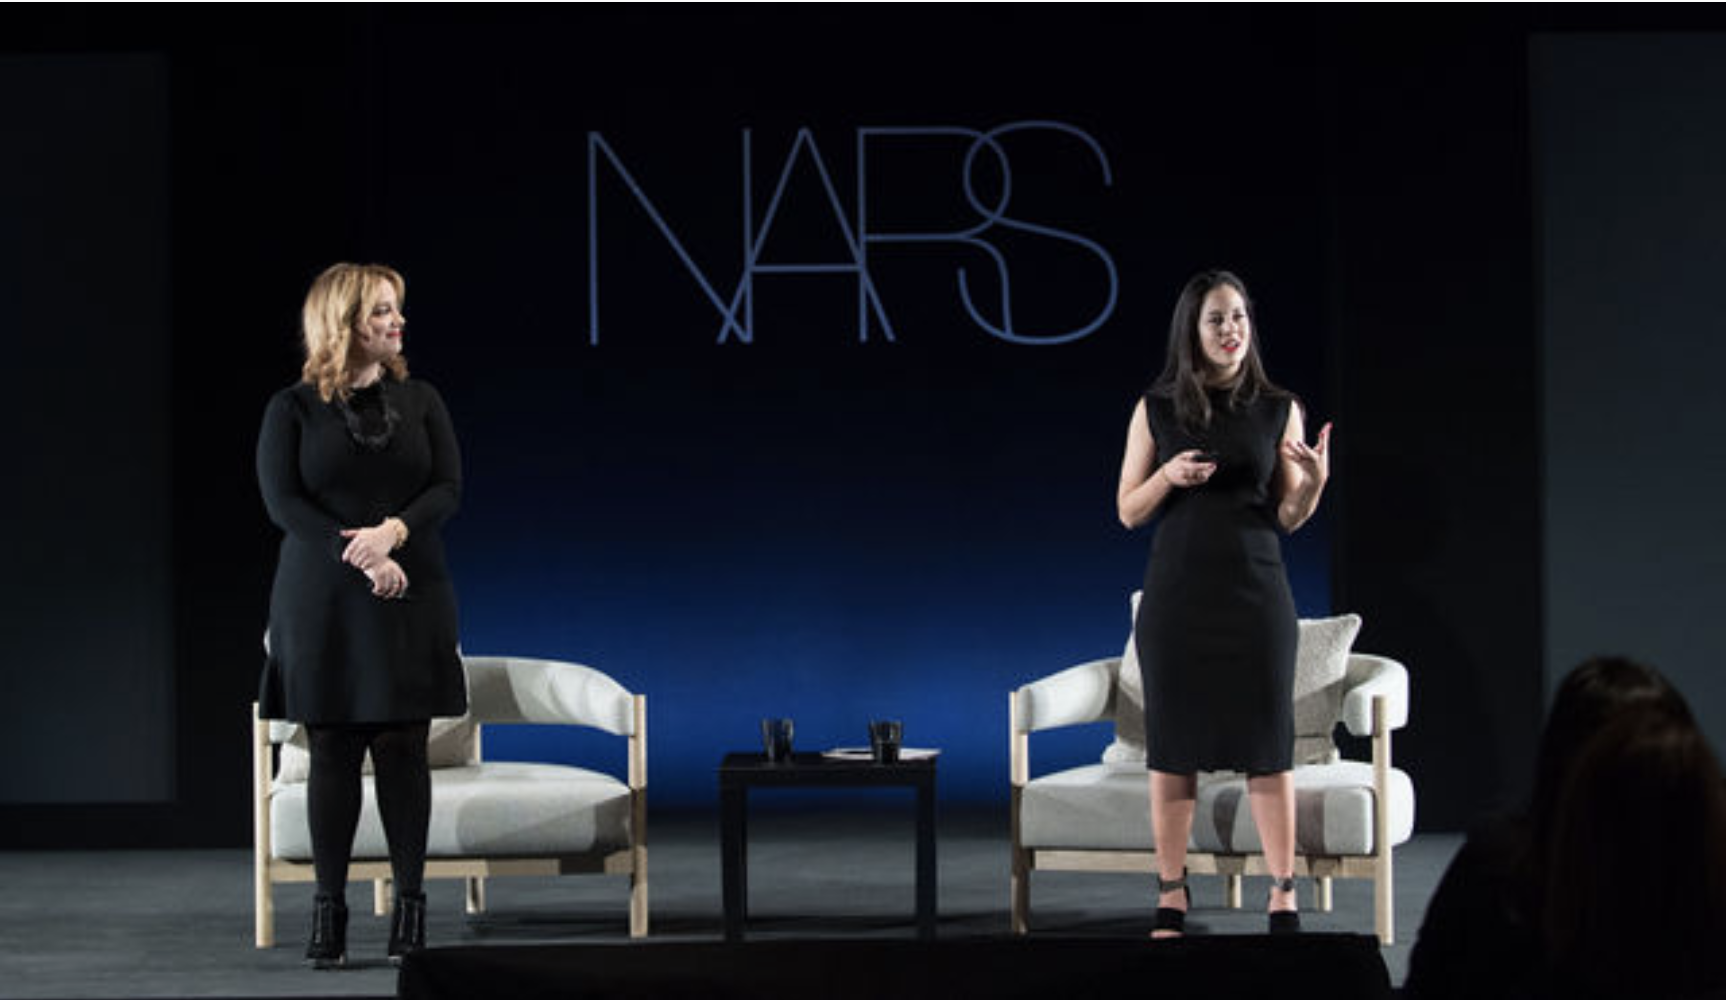 NARS COSMETICS - Since 2016, LDJ has partnered with NARS Cosmetics on their National Sales Events held in New York. We have been thrilled to be part of the NARS journey as the brand continues to grow with an eye on quality and consistency.